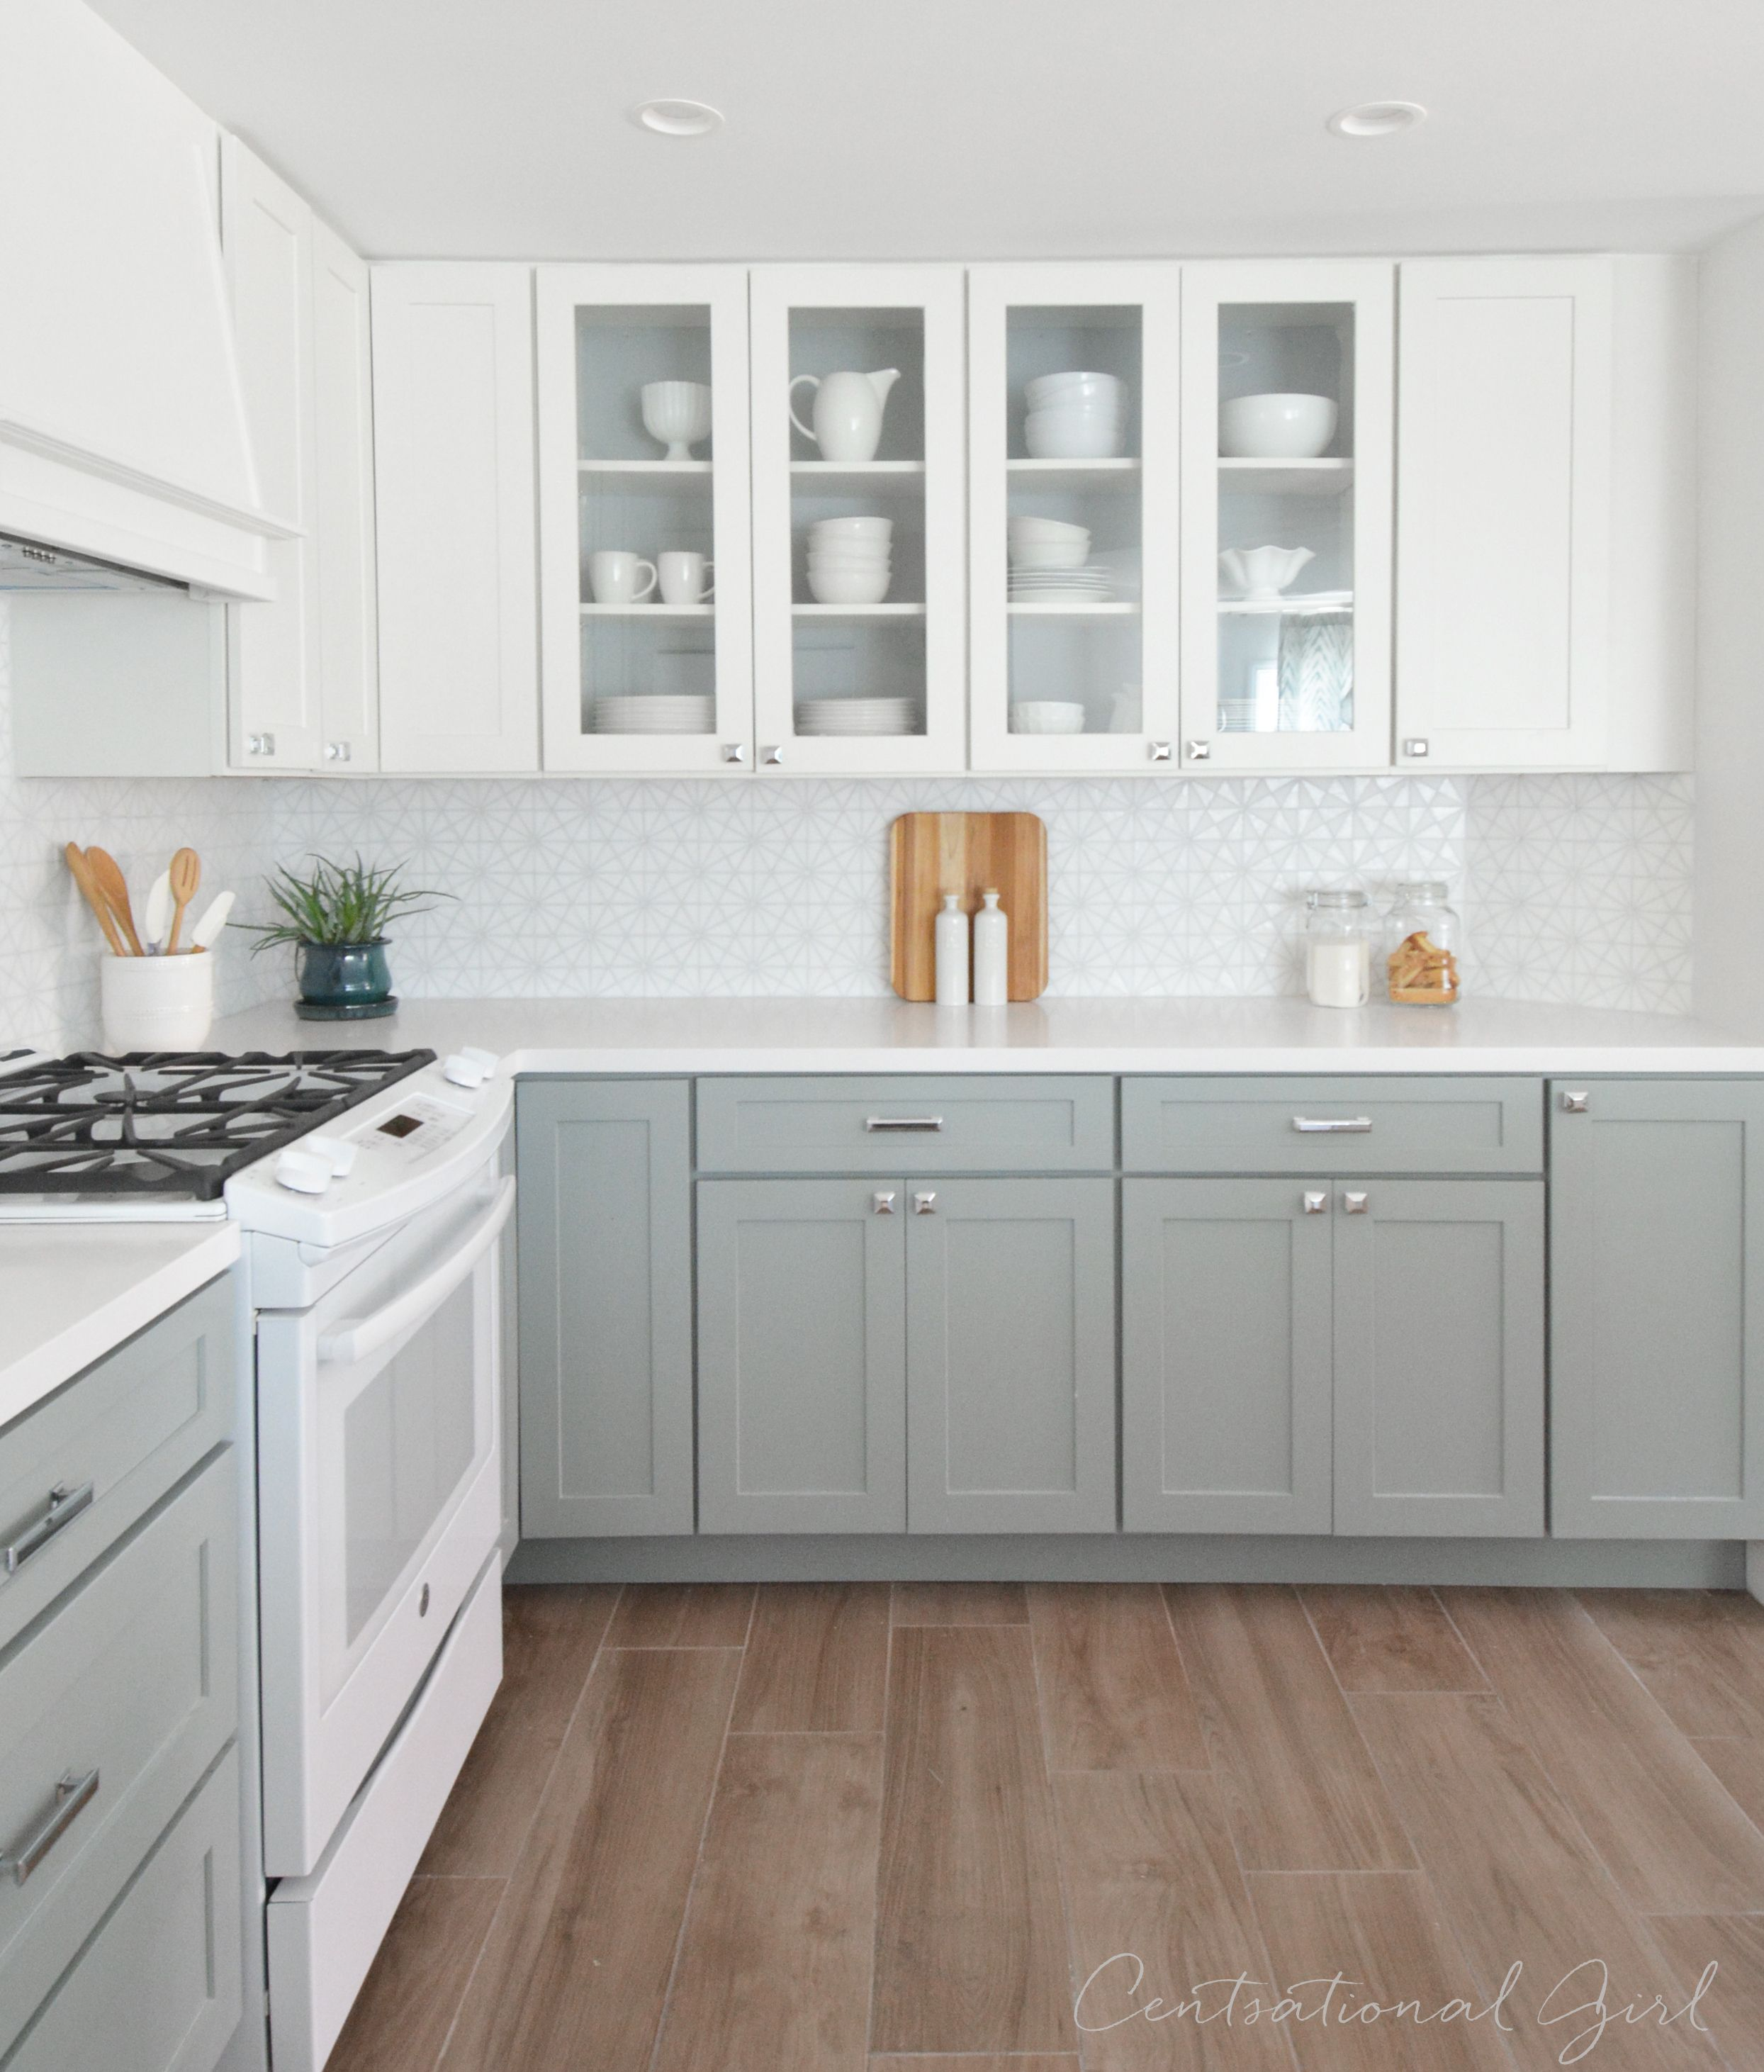 Best White And Gray Kitchen Remodel Want To Travel The World 640 x 480